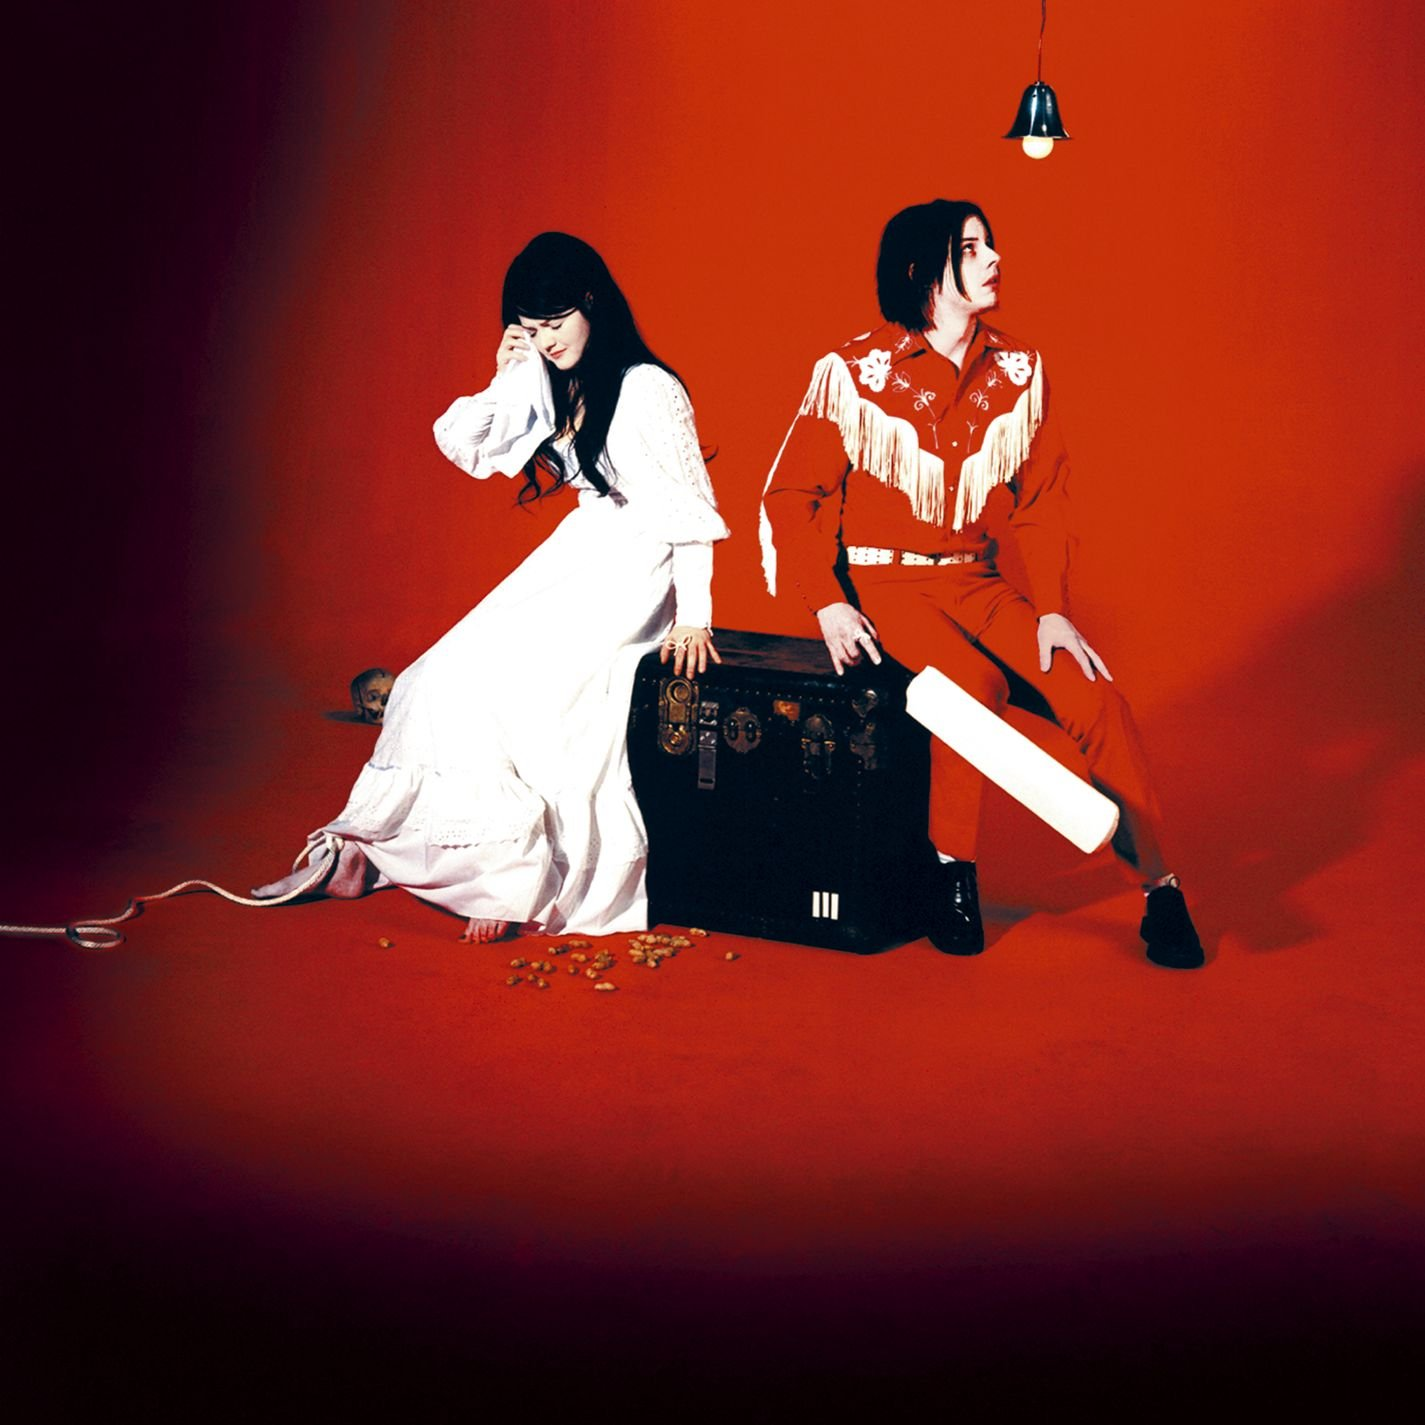 The White Stripes - Elephant (2xLP) - Amazon.com Music